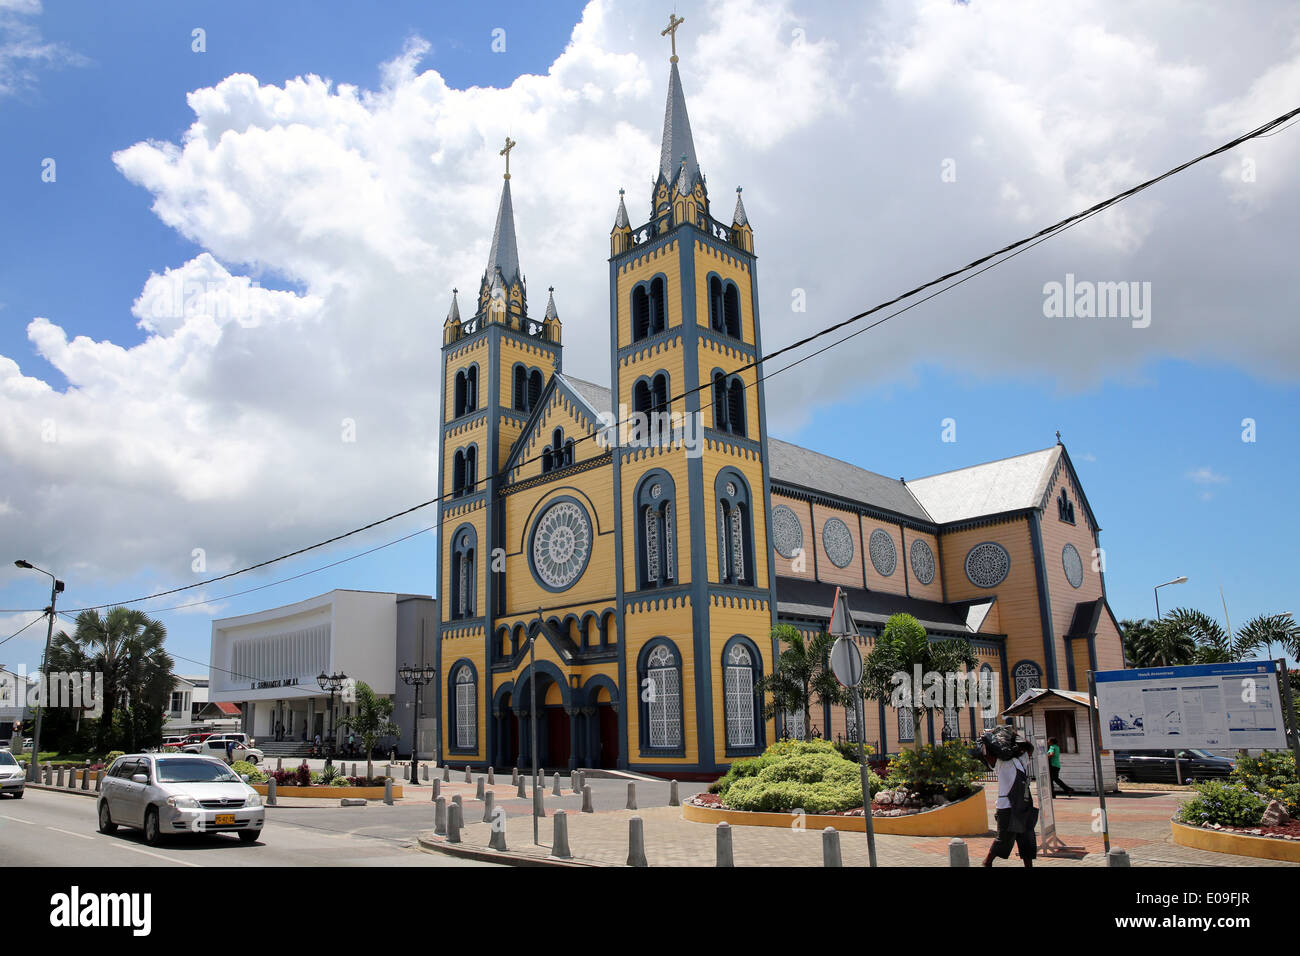 wooden Saint Peter and Paul Cathedral in the Gravenstraat, Paramaribo, capital of Suriname, Latin America - Stock Image